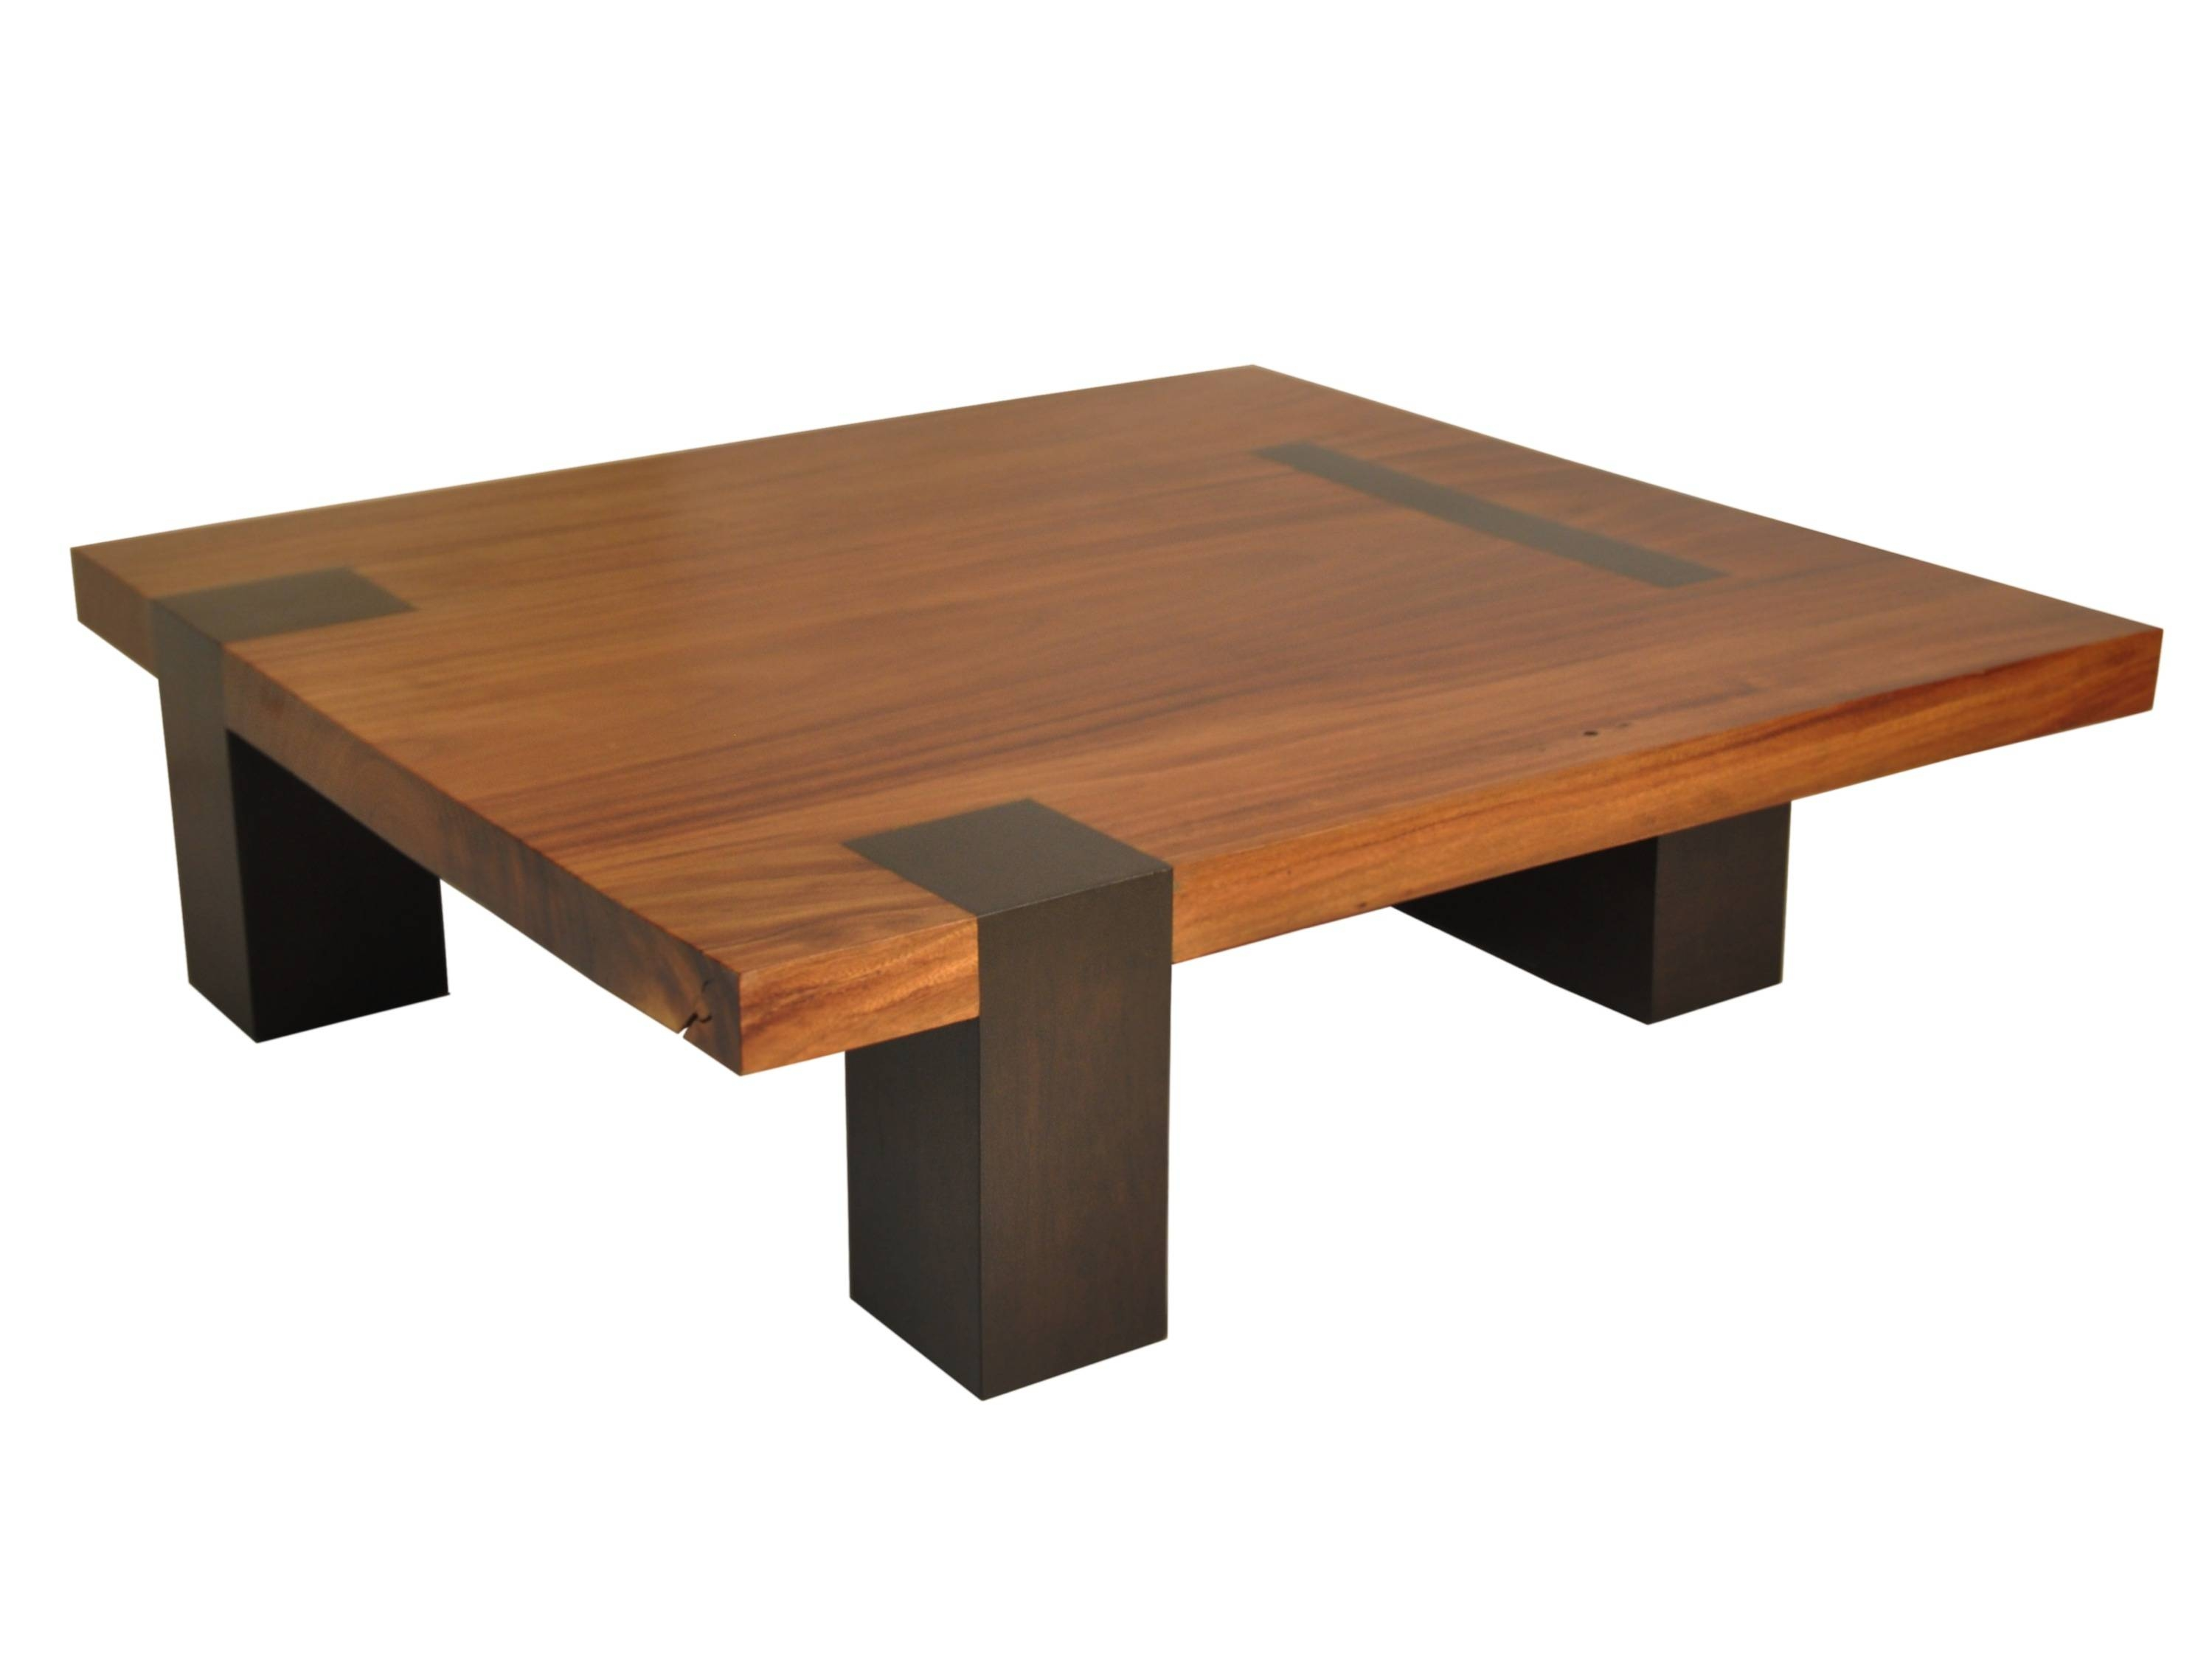 Cool Solid Wood Coffee Table – Radioritas intended for Coffee Tables Solid Wood (Image 12 of 30)